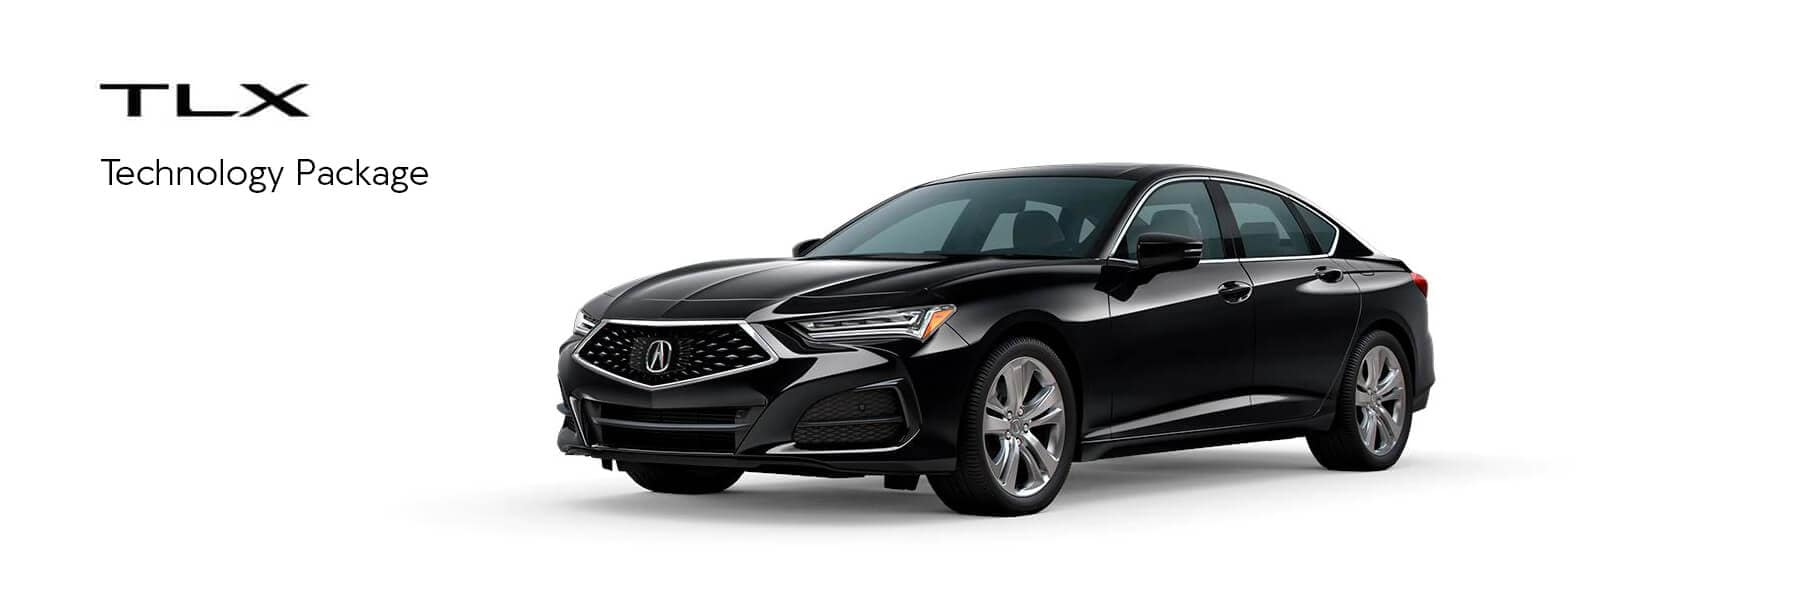 Acura TLX Technology Package Slider